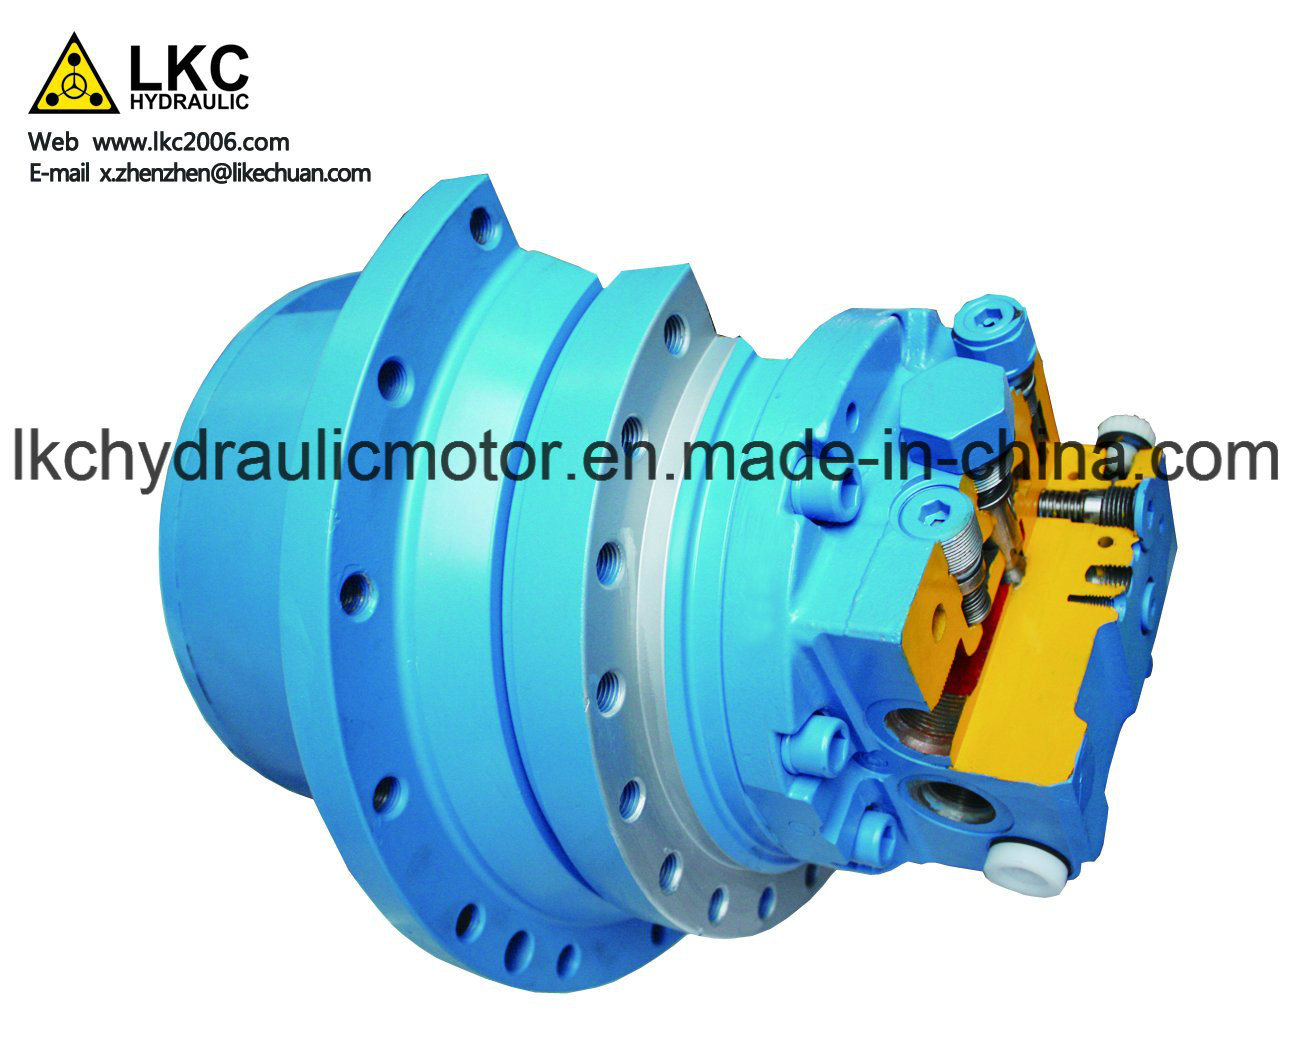 Kyb Axial Piston Motor Spare Parts for 2.5t~3.5t Crawler Machinery